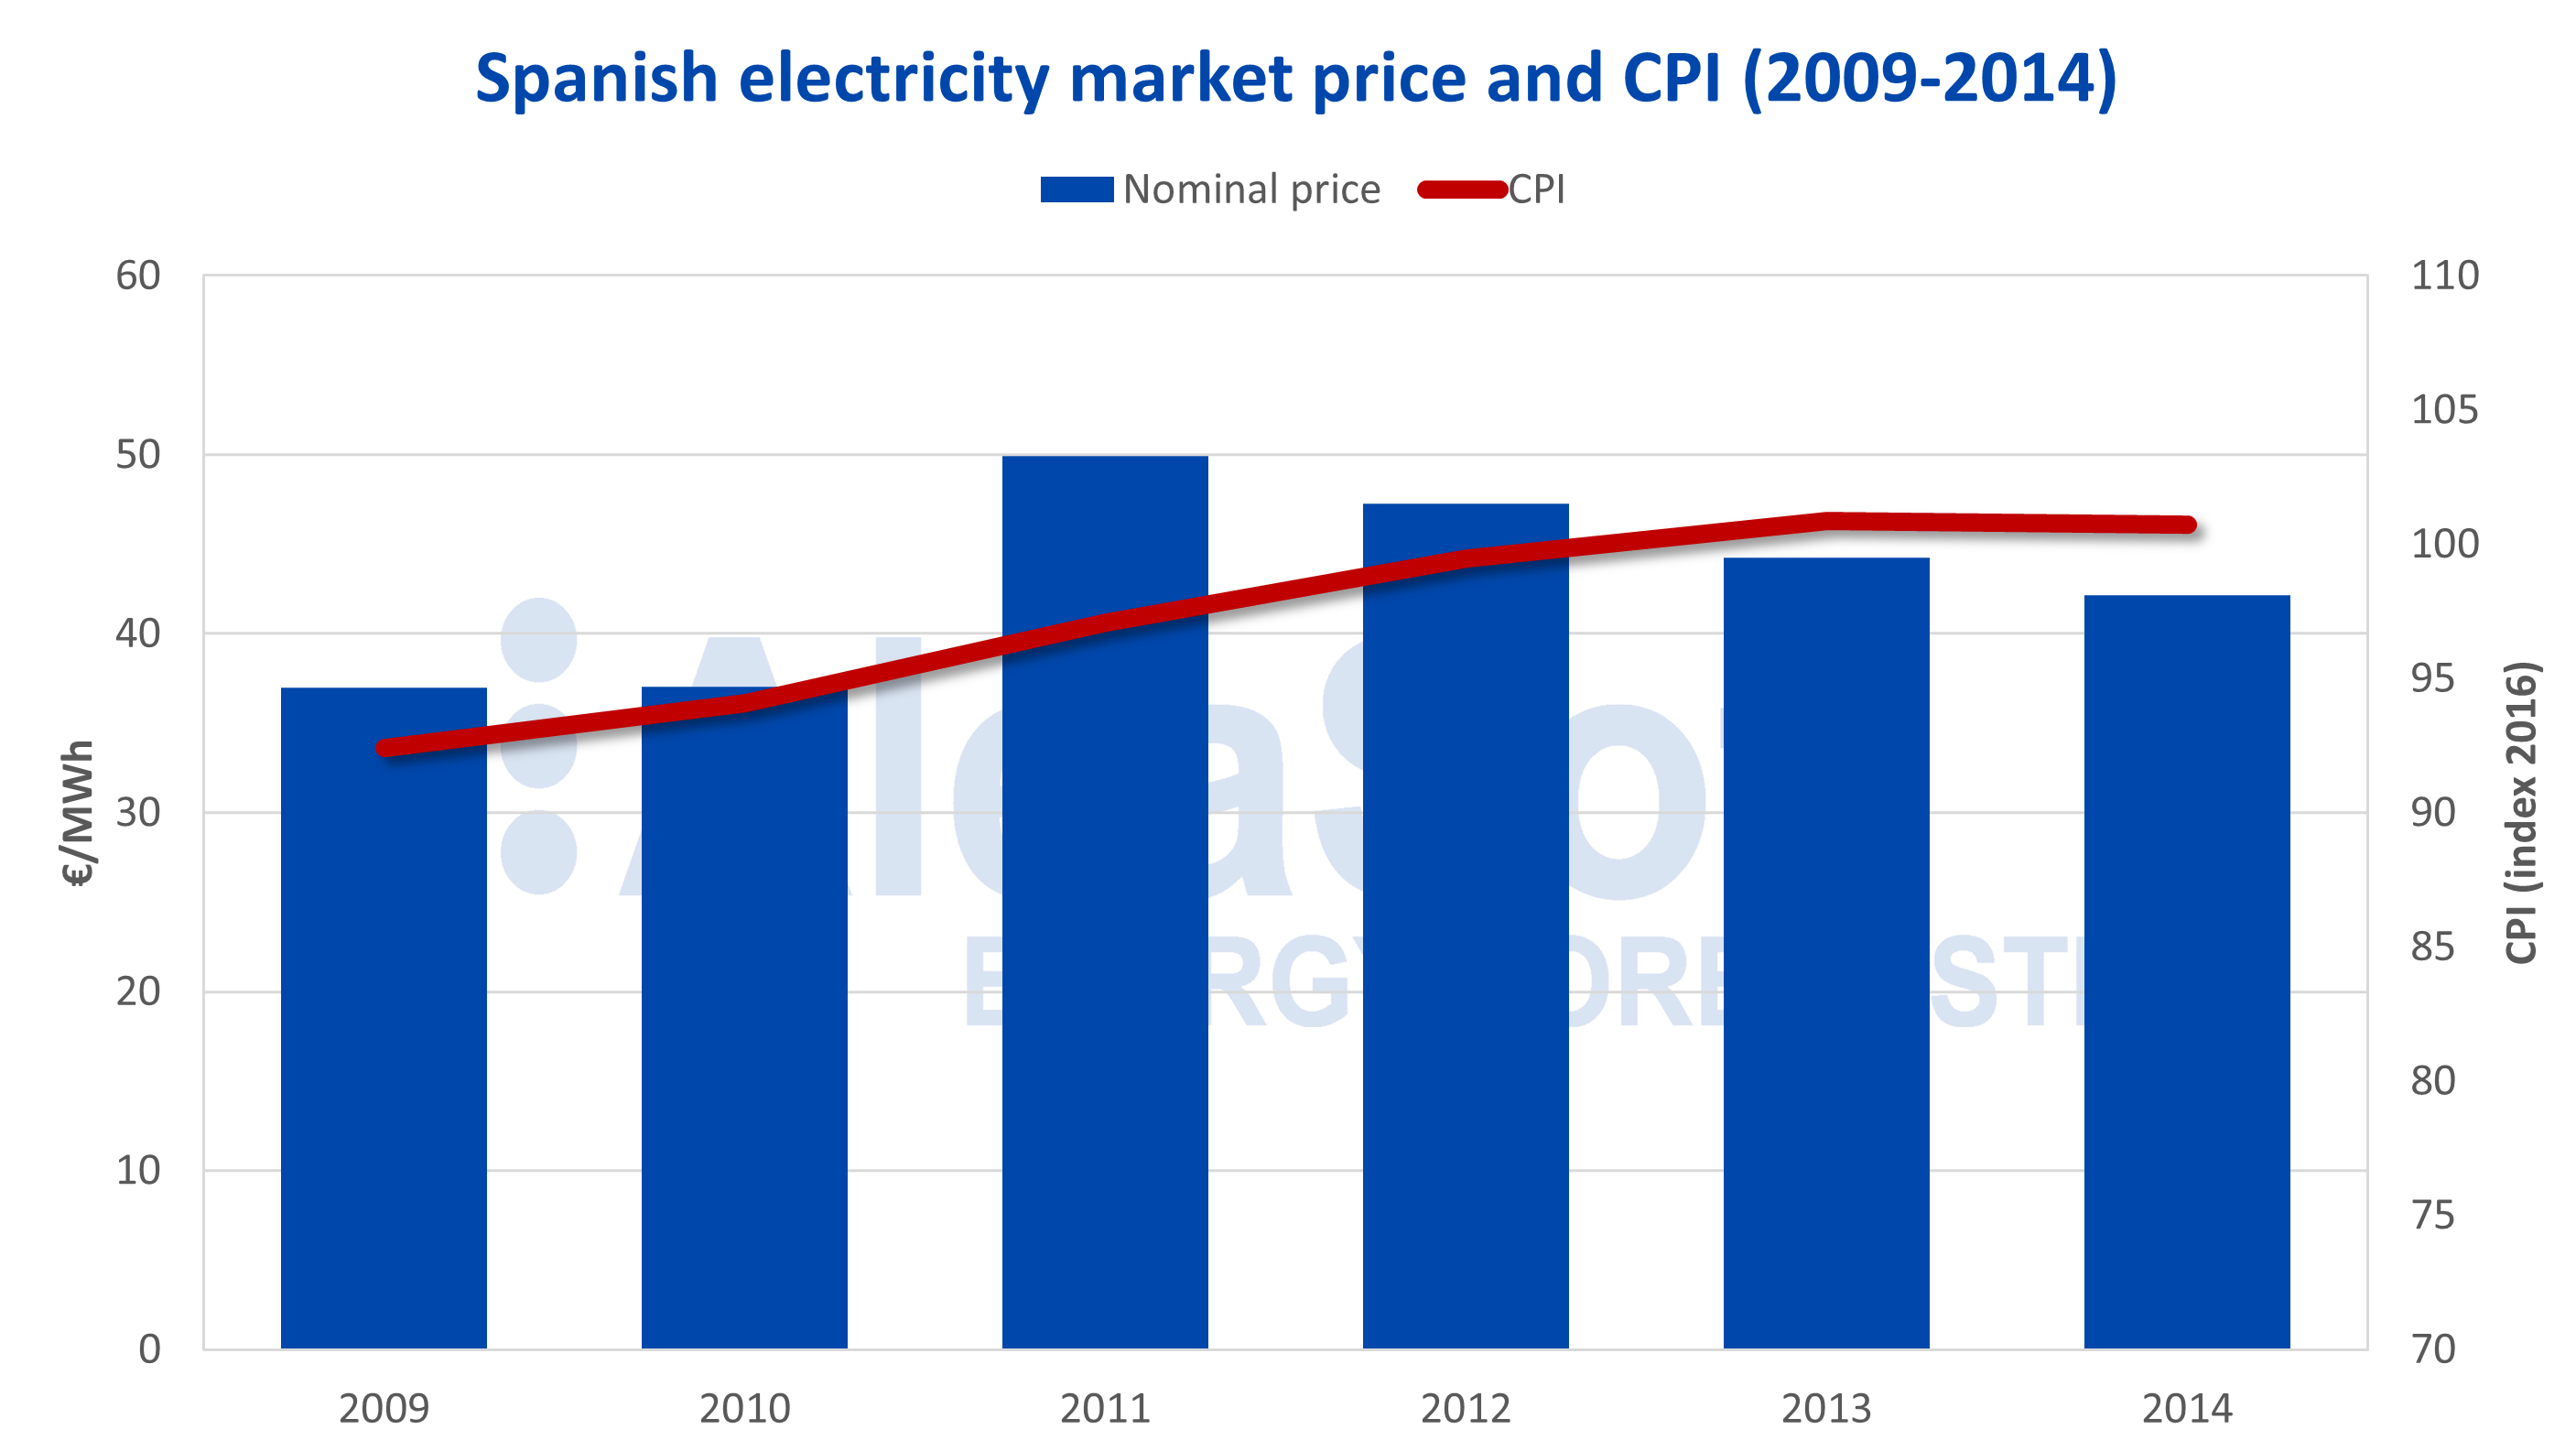 AleaSoft - Spanish electricity market price CPI